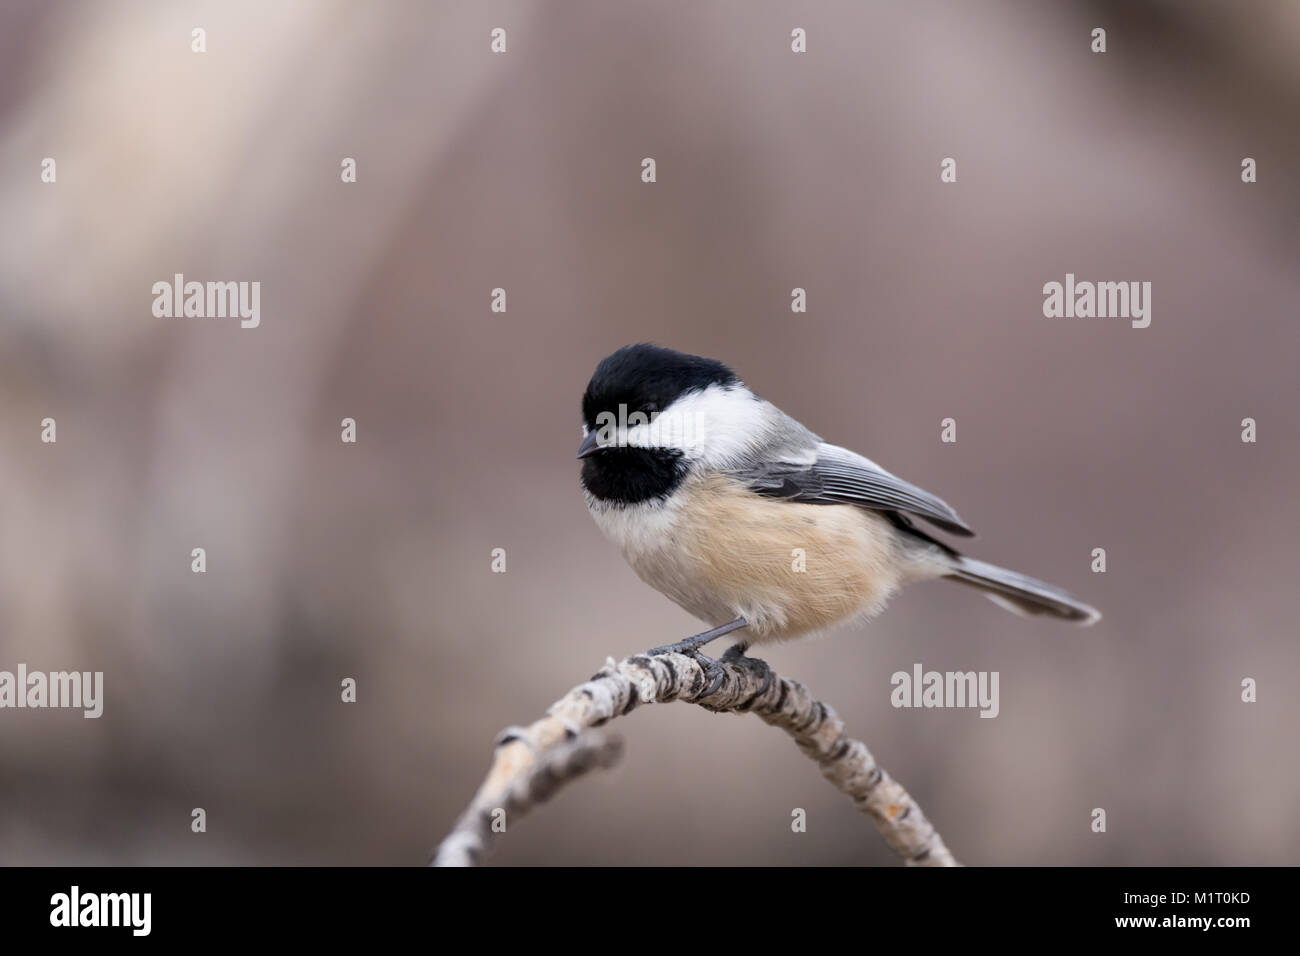 Black Capped chickadee sitting on a curved branch with soft warm brown tones in the background - Stock Image